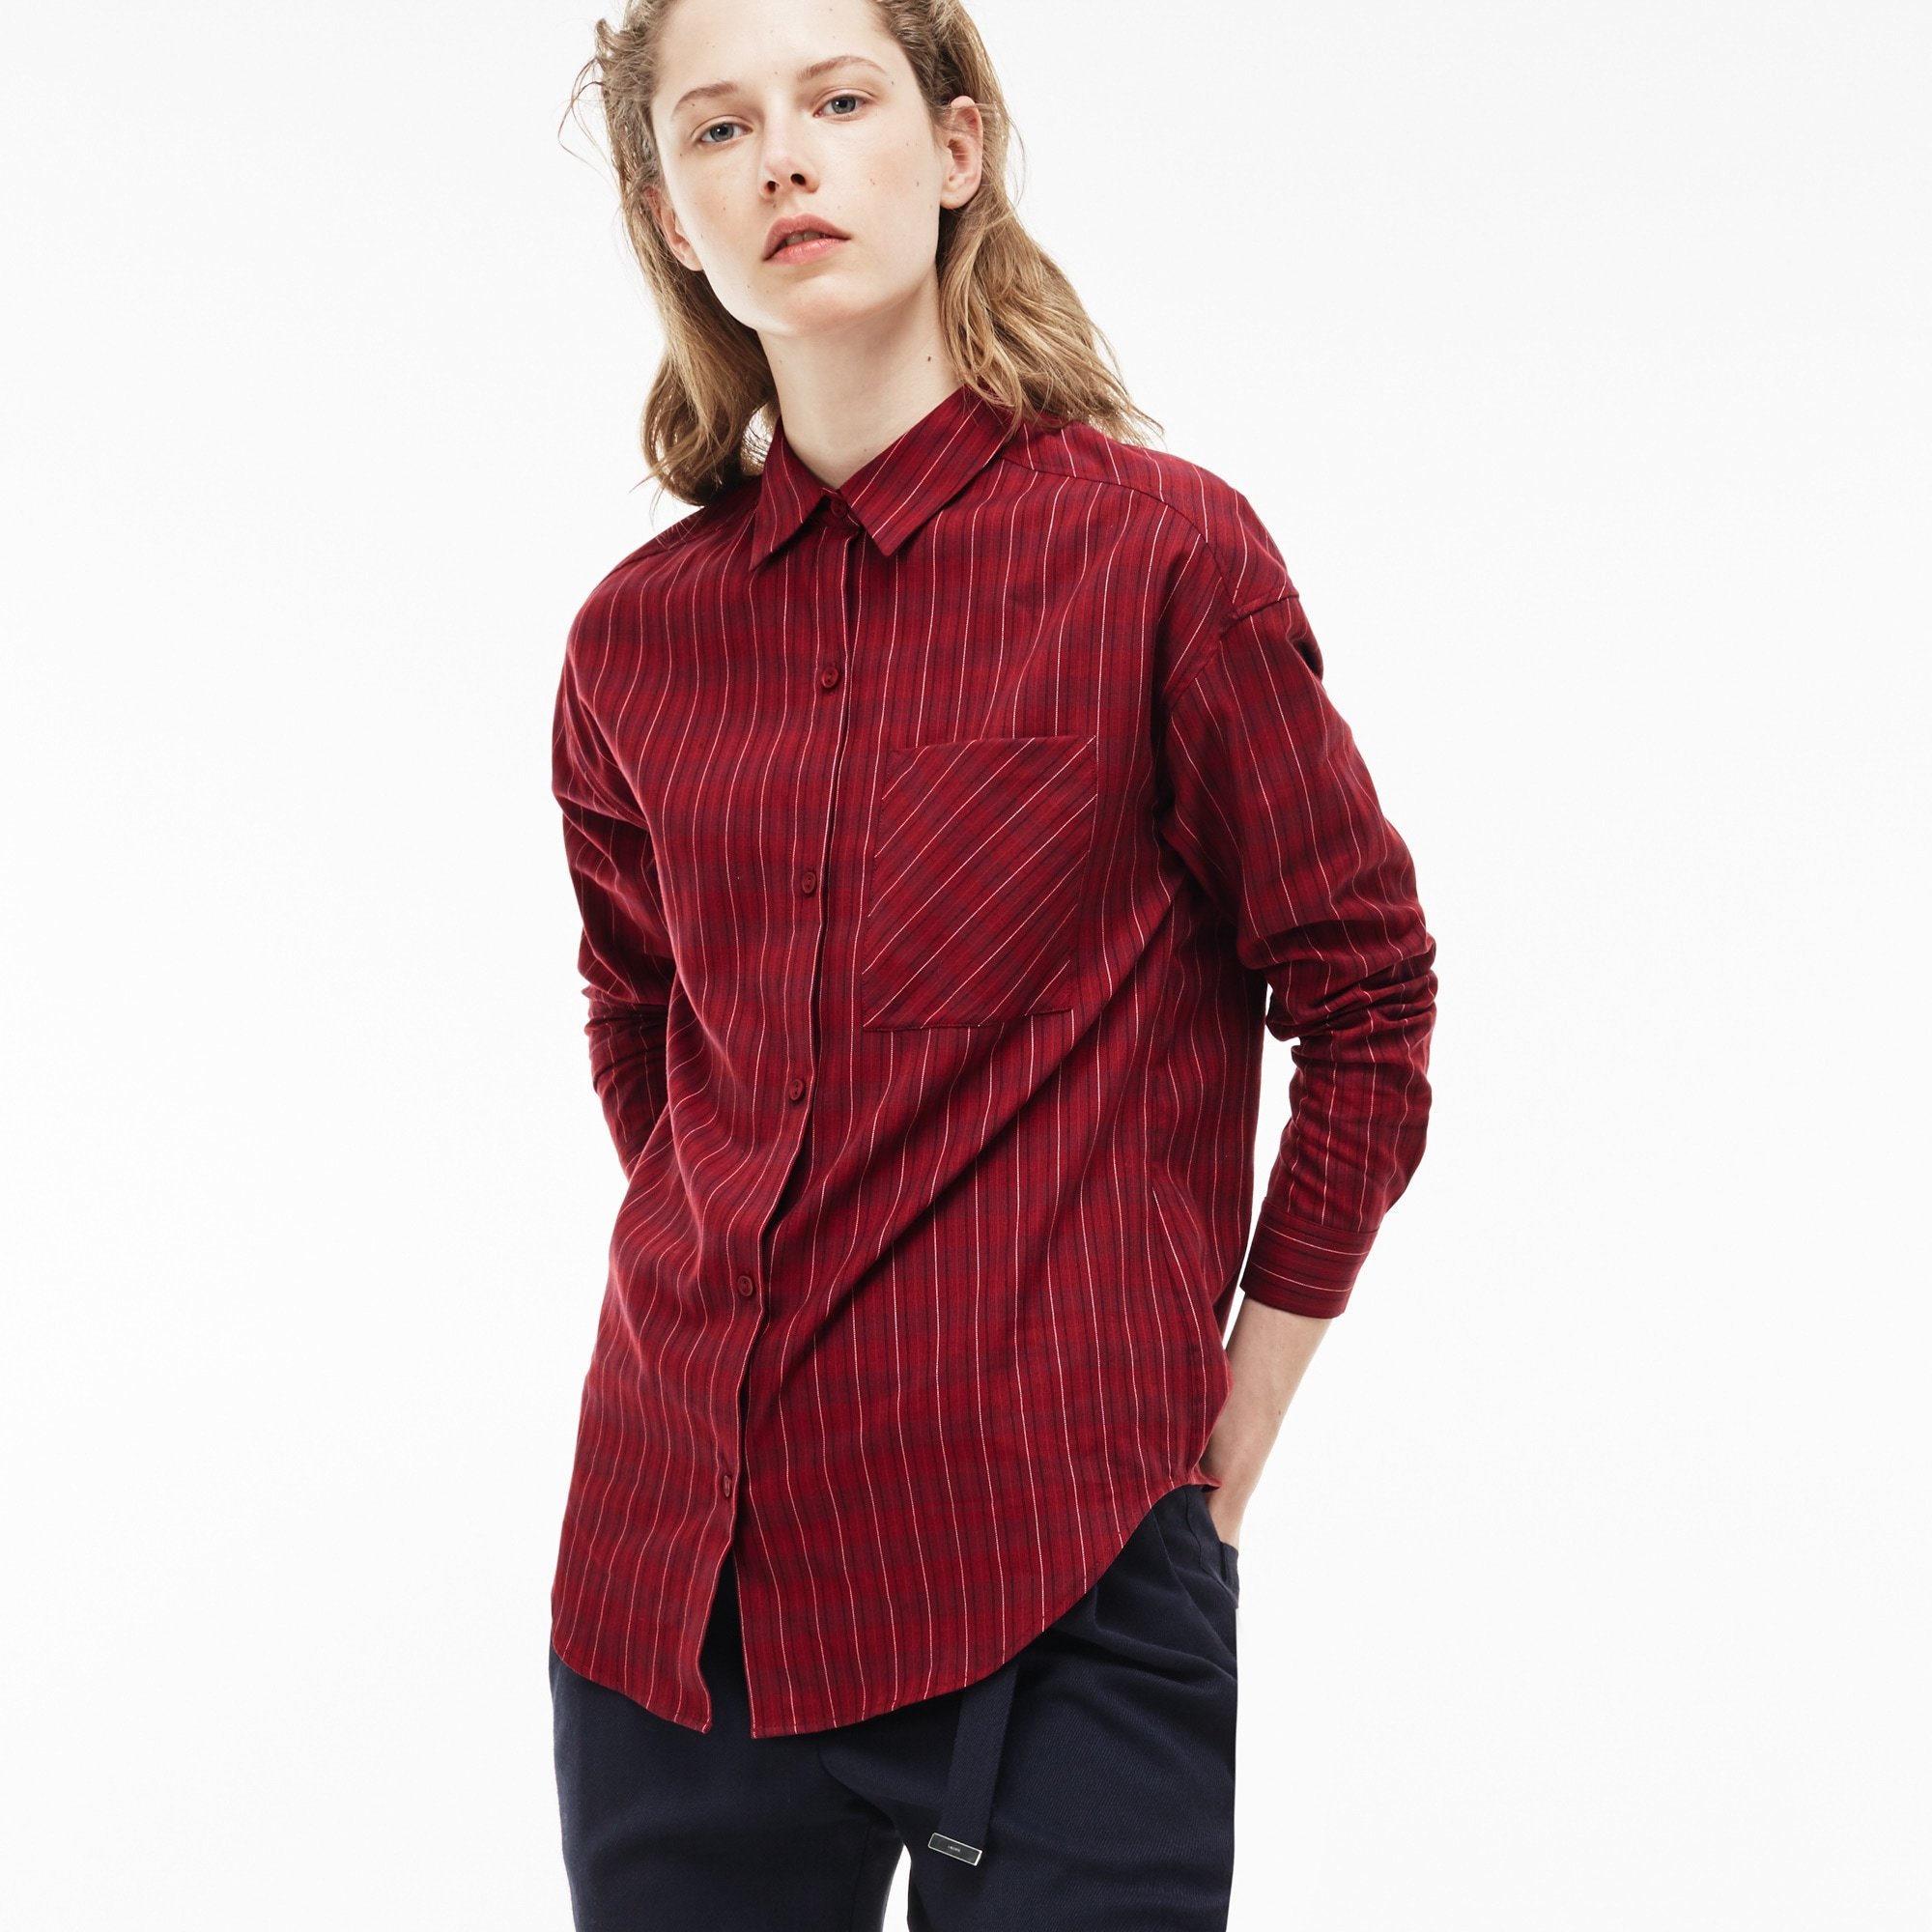 Women'S Check Cotton Poplin Shirt in Turkey Red/Beaujolais 09E from Lacoste